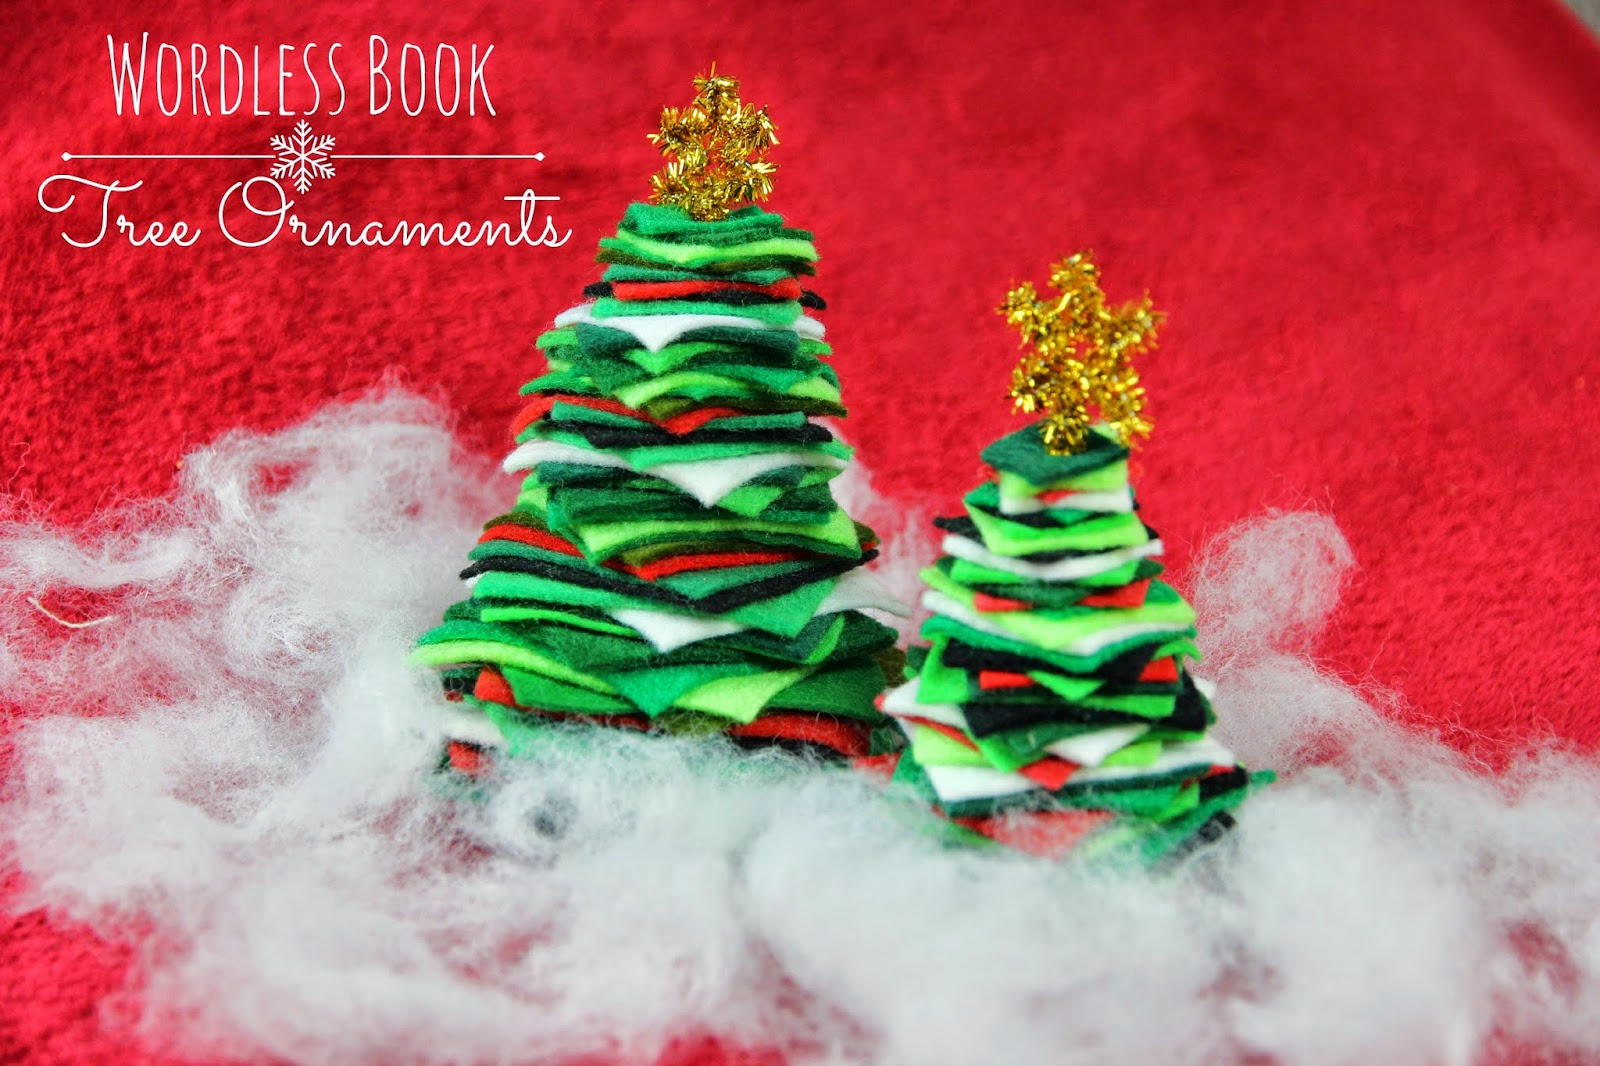 Jesus is the Good News: Wordless Book Tree Ornament